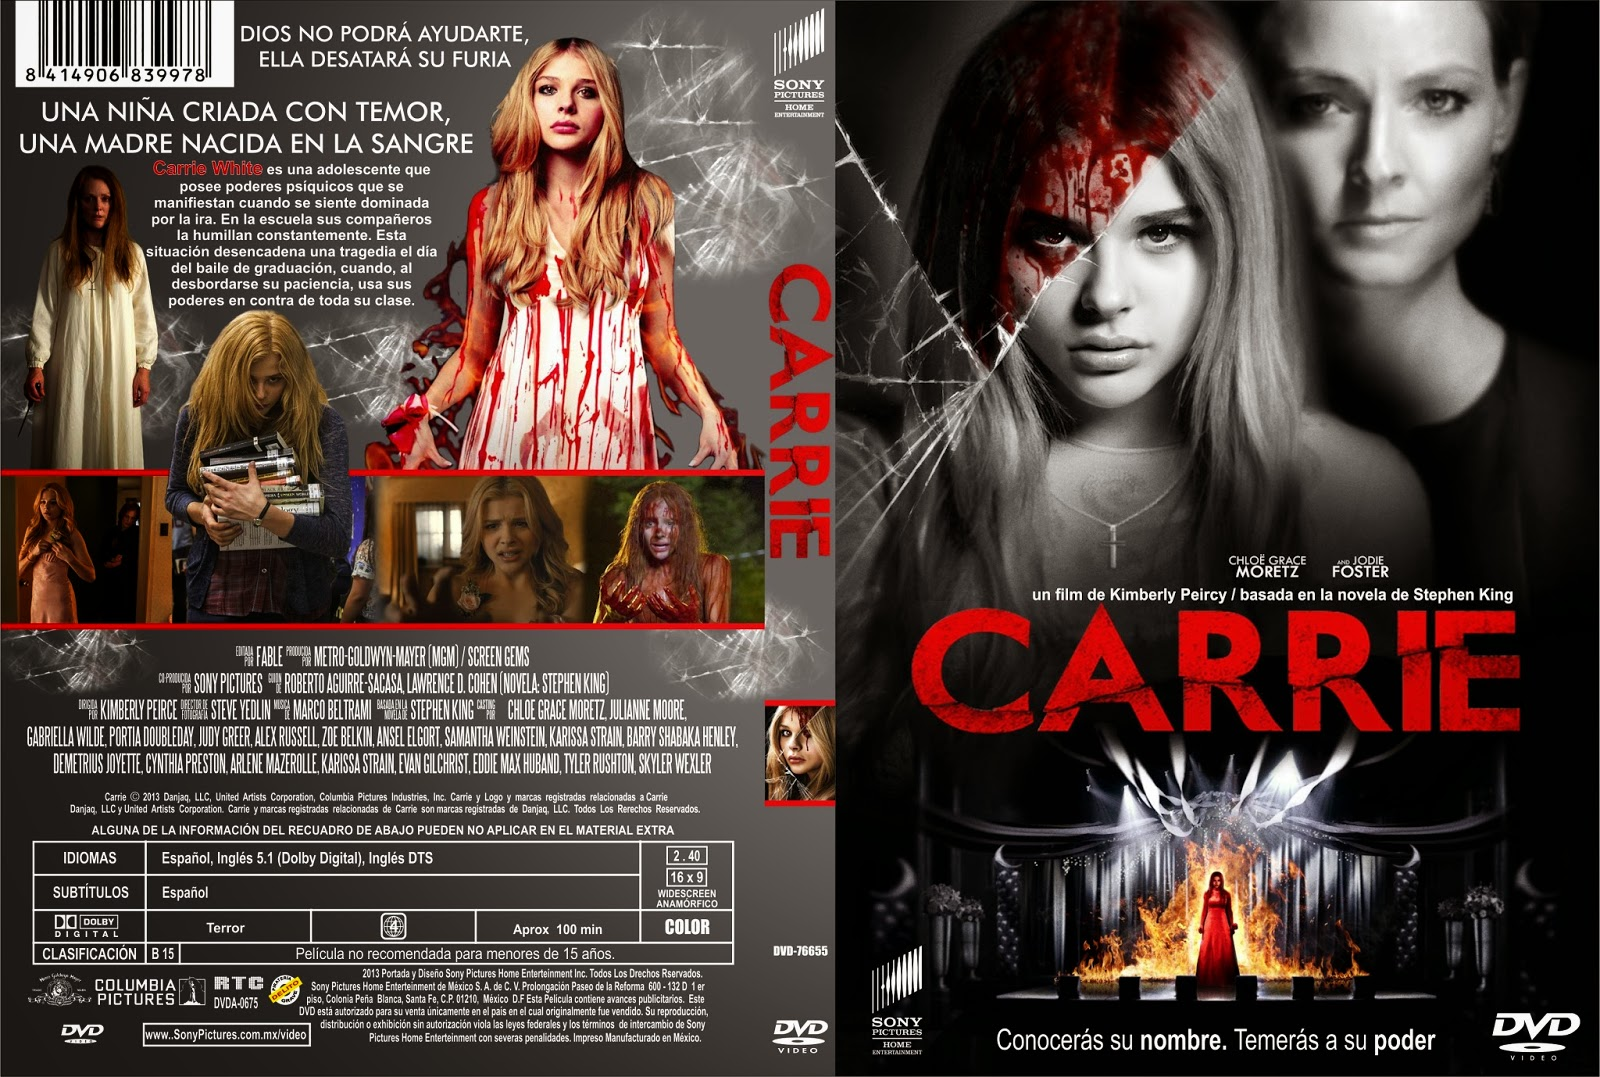 Carrie DVD 2013